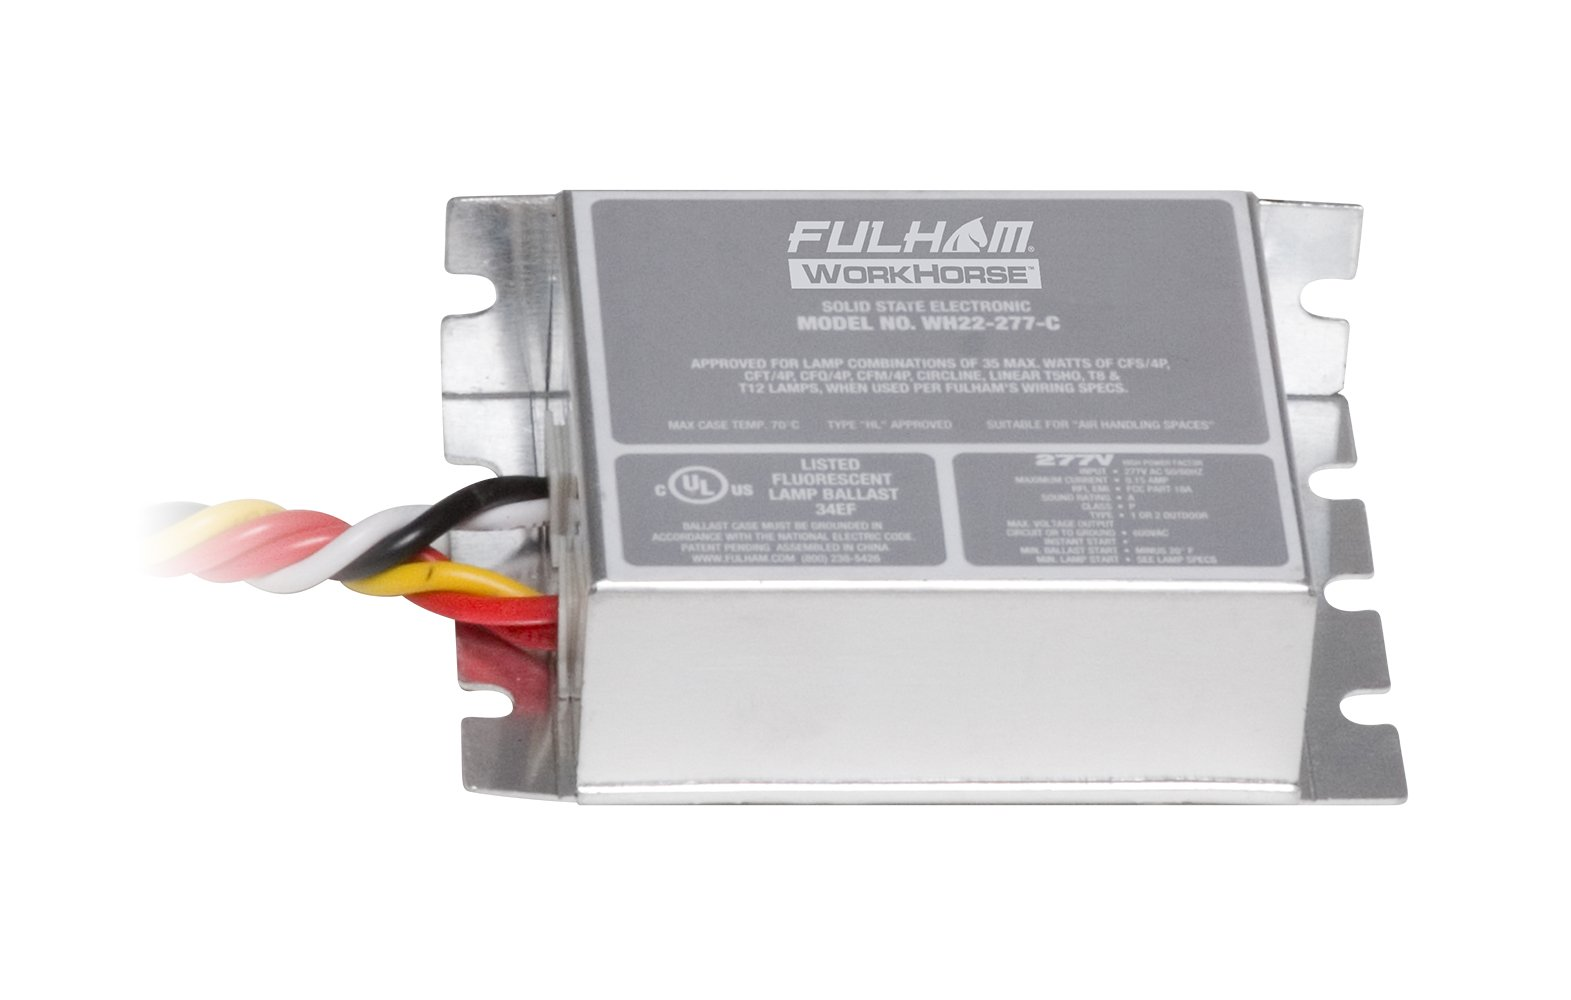 Fulham WH22-277-C Workhorse Adaptable Ballast